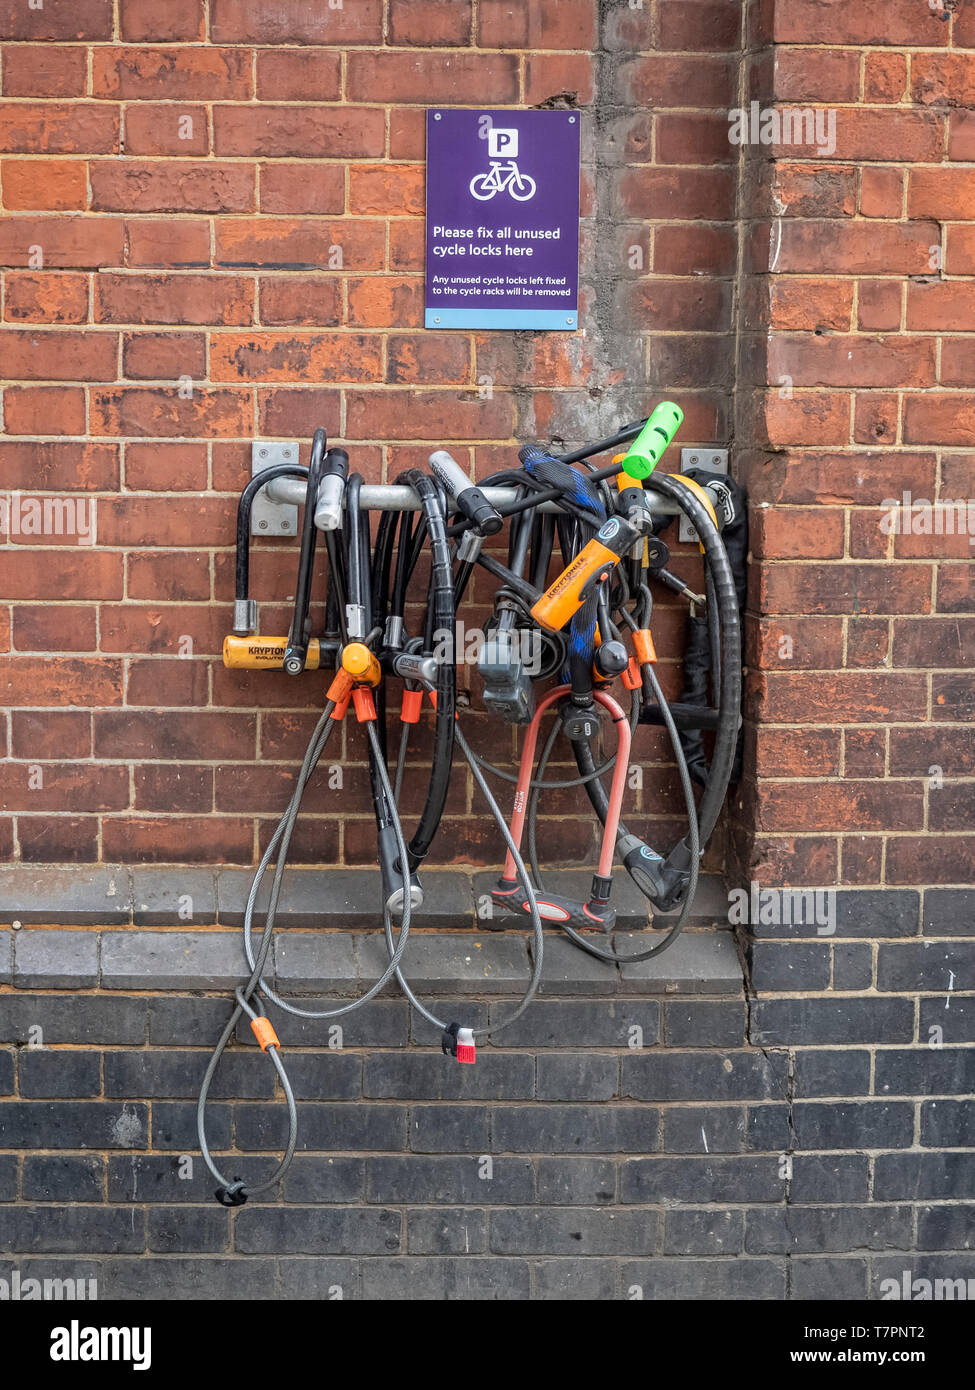 Cycle parking - holder for storing Cycle padlocks when not in use - Stock Image